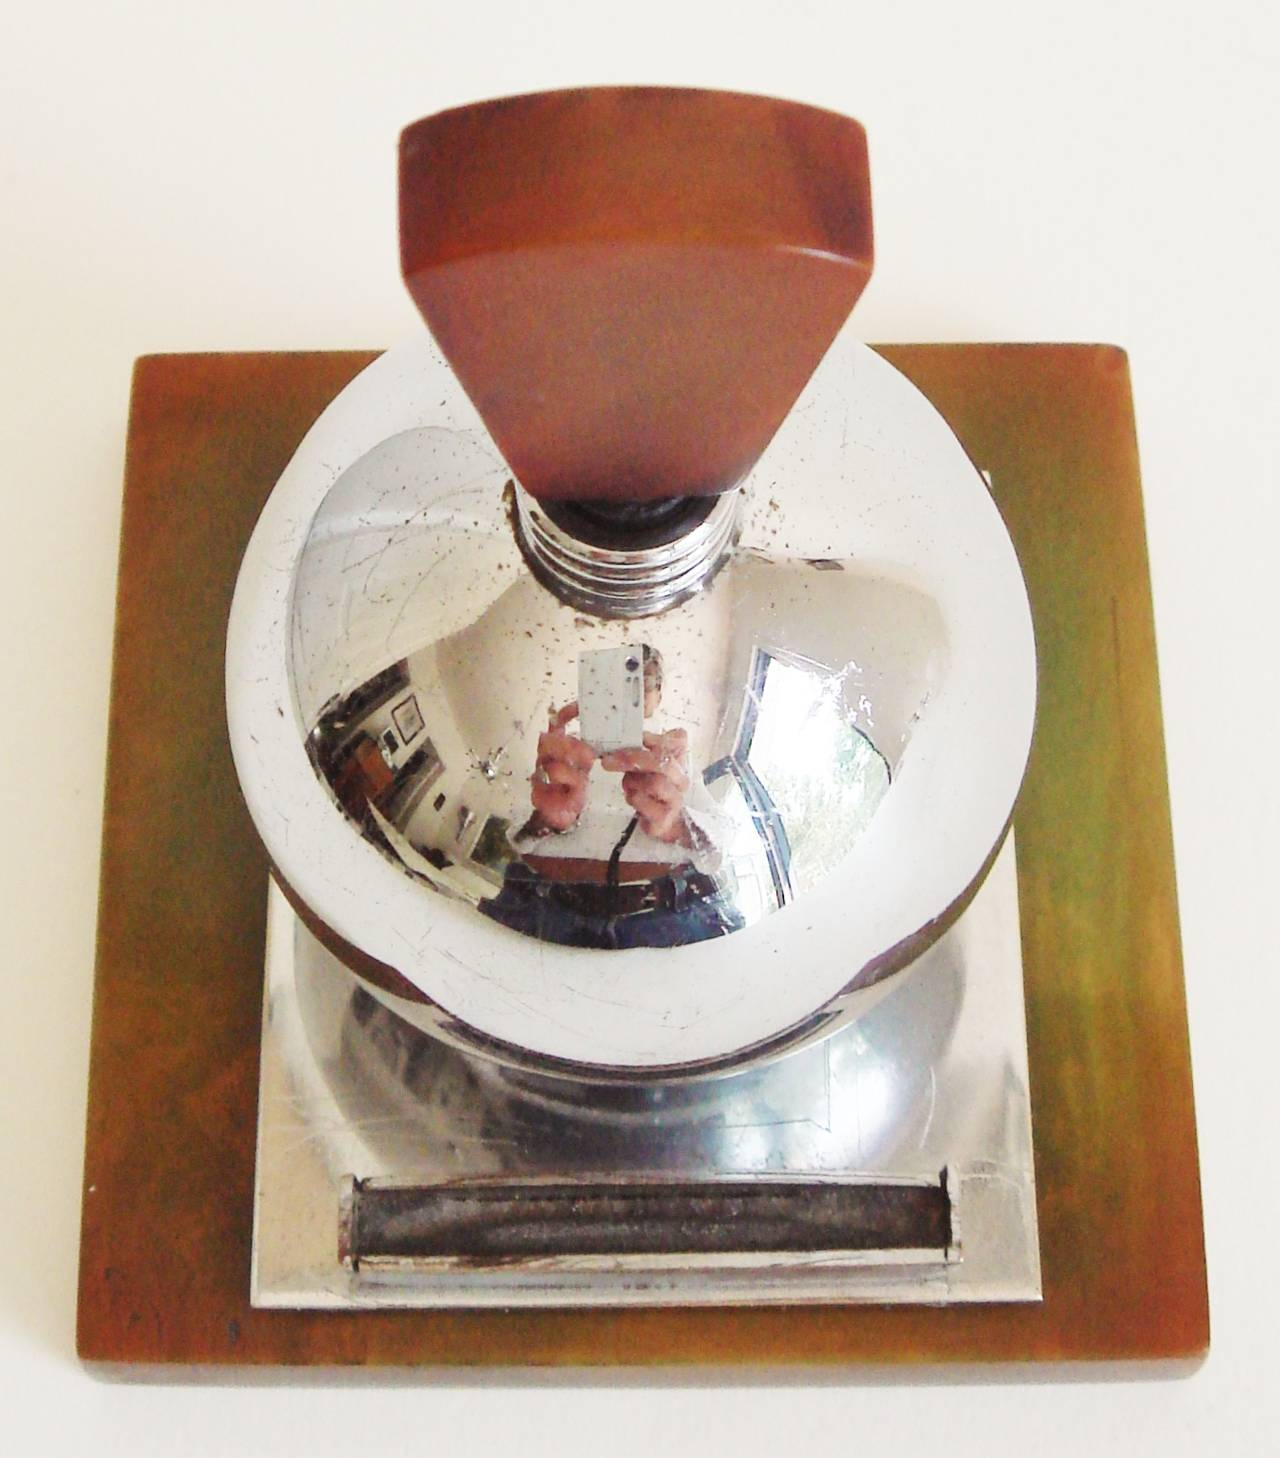 The Bakelite base and keystone wand finial of this rare English Art Deco chrome spherical striker lighter would originally have been a marbled leaf green but in 80+ years the colour has developed a marvelous and rich treacle-toffee patina. The